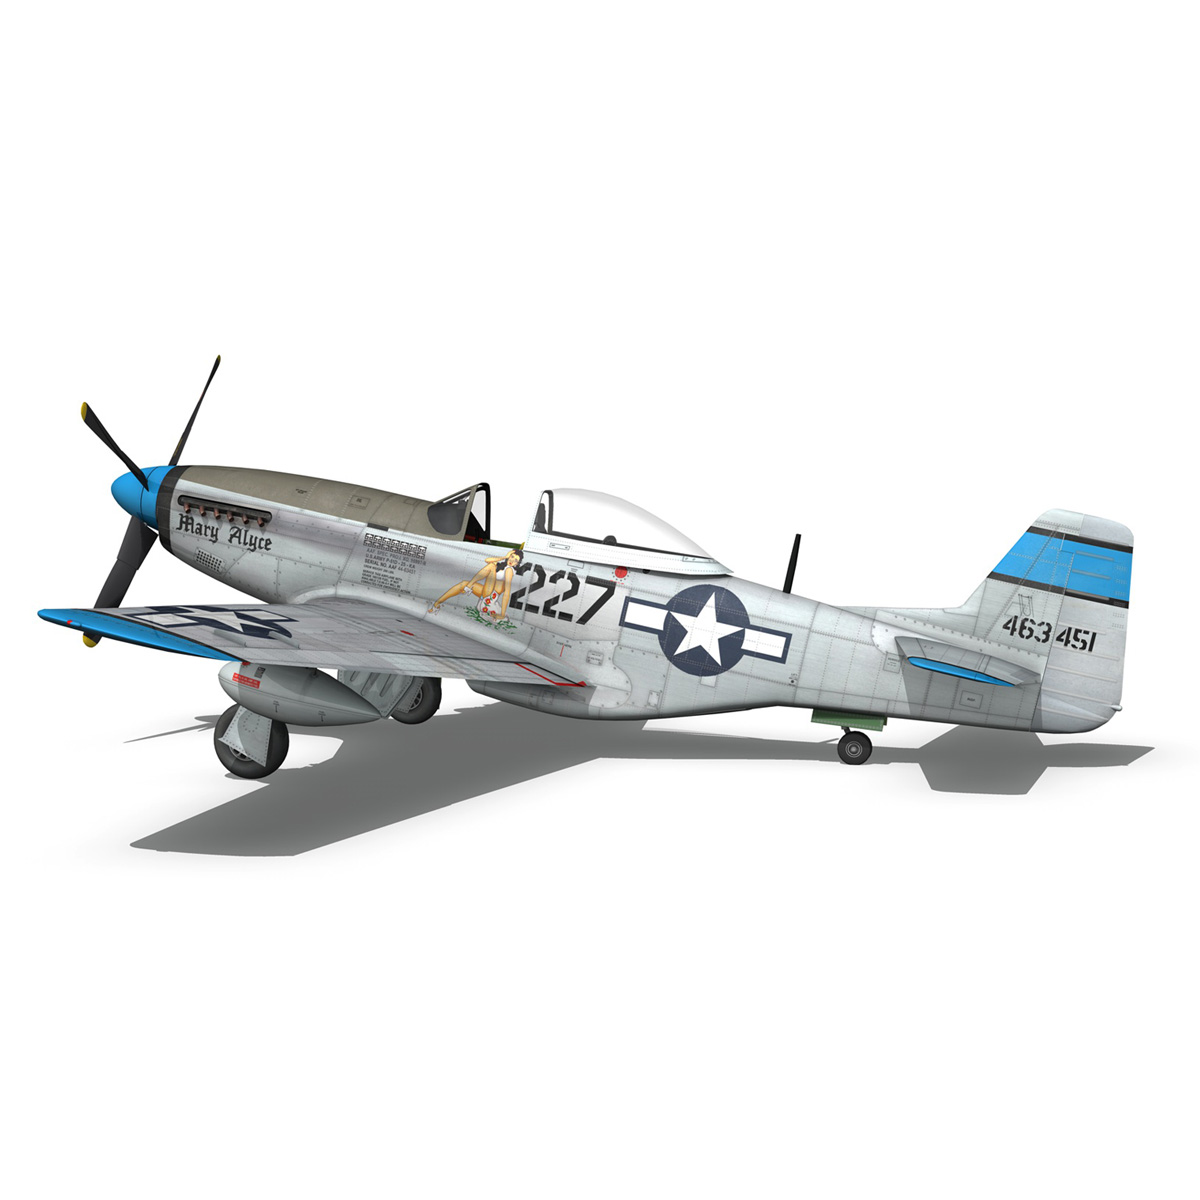 north american p-51d – mustang – mary alyce 3d model 3ds fbx c4d lwo obj 267577